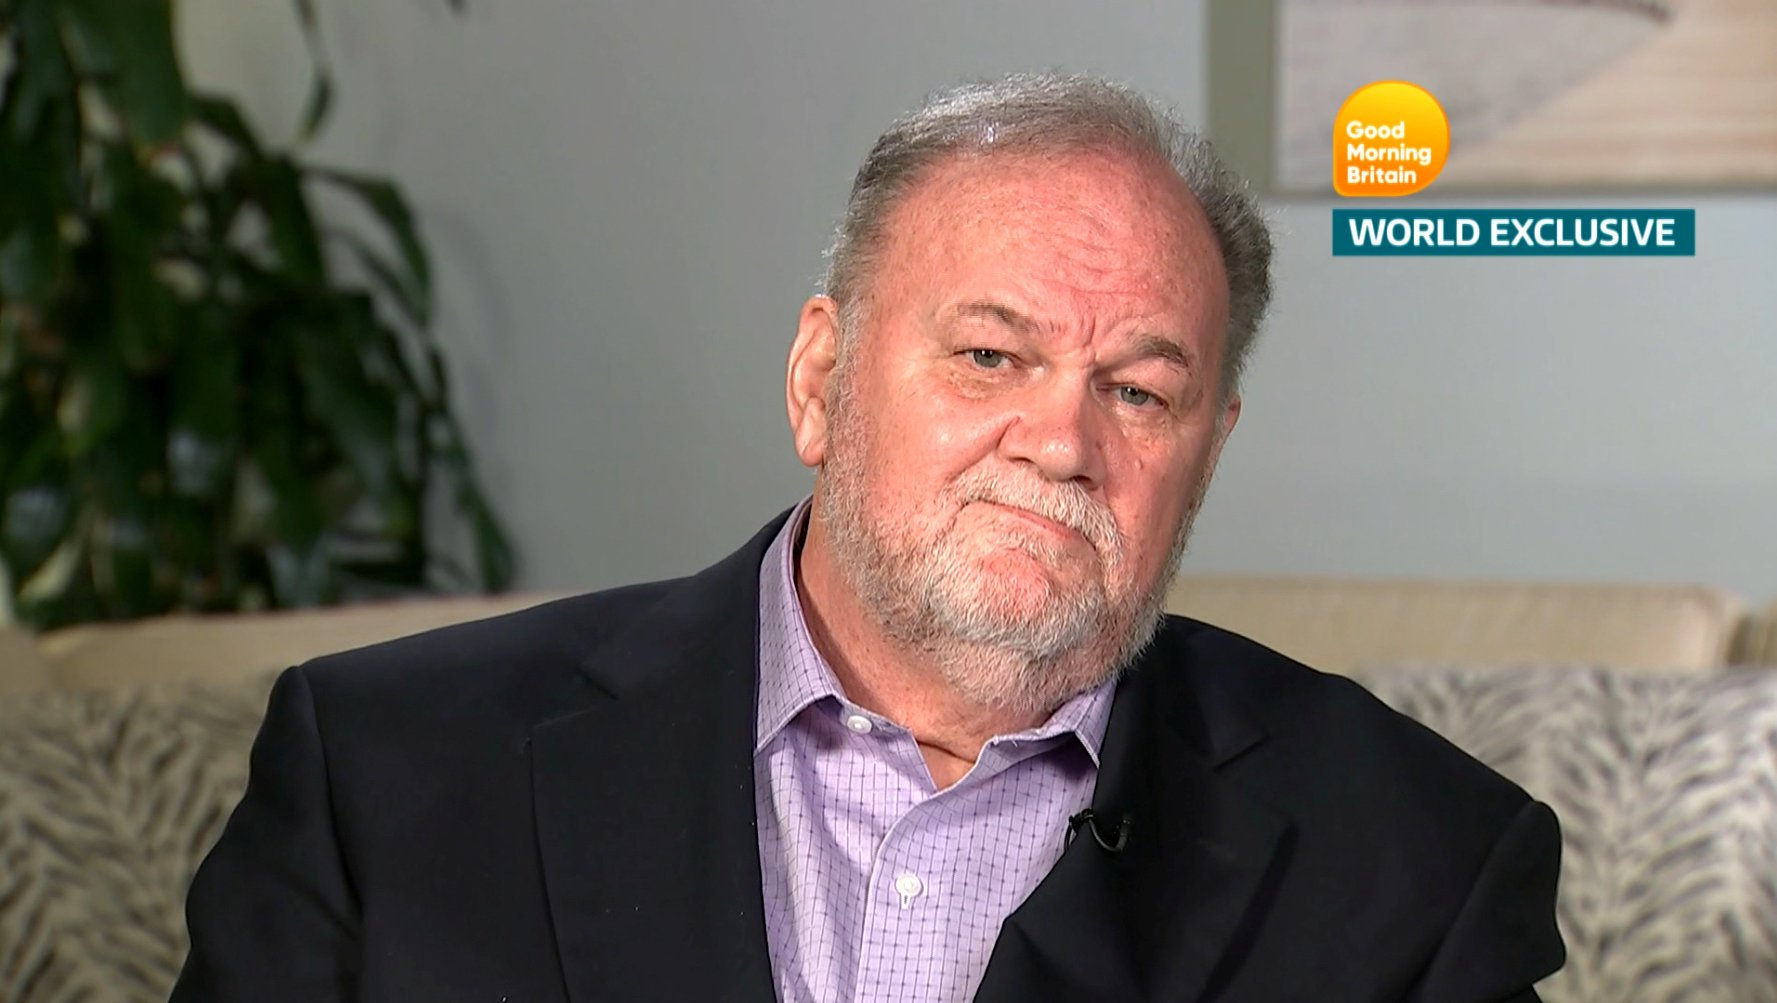 Thomas Markle, Meghan Markle's father, is seen in a still taken from video as he gives an interview to ITV's Good Morning Britain program which is broadcast from London, Britain, June 18, 2018. Good Morning Britain/ITV handout via REUTERS MUST NOT OBSTRUCT LOGOS/ NO ARCHIVE/ NO RESALE/ NO NEW USES AFTER 0900GMT ON JUNE 19, 2018 NOT FOR SALE FOR MARKETING OR ADVERTISING CAMPAIGNS THIS IMAGE HAS BEEN SUPPLIED BY A THIRD PARTY. IT IS DISTRIBUTED, EXACTLY AS RECEIVED BY REUTERS, AS A SERVICE TO CLIENTS